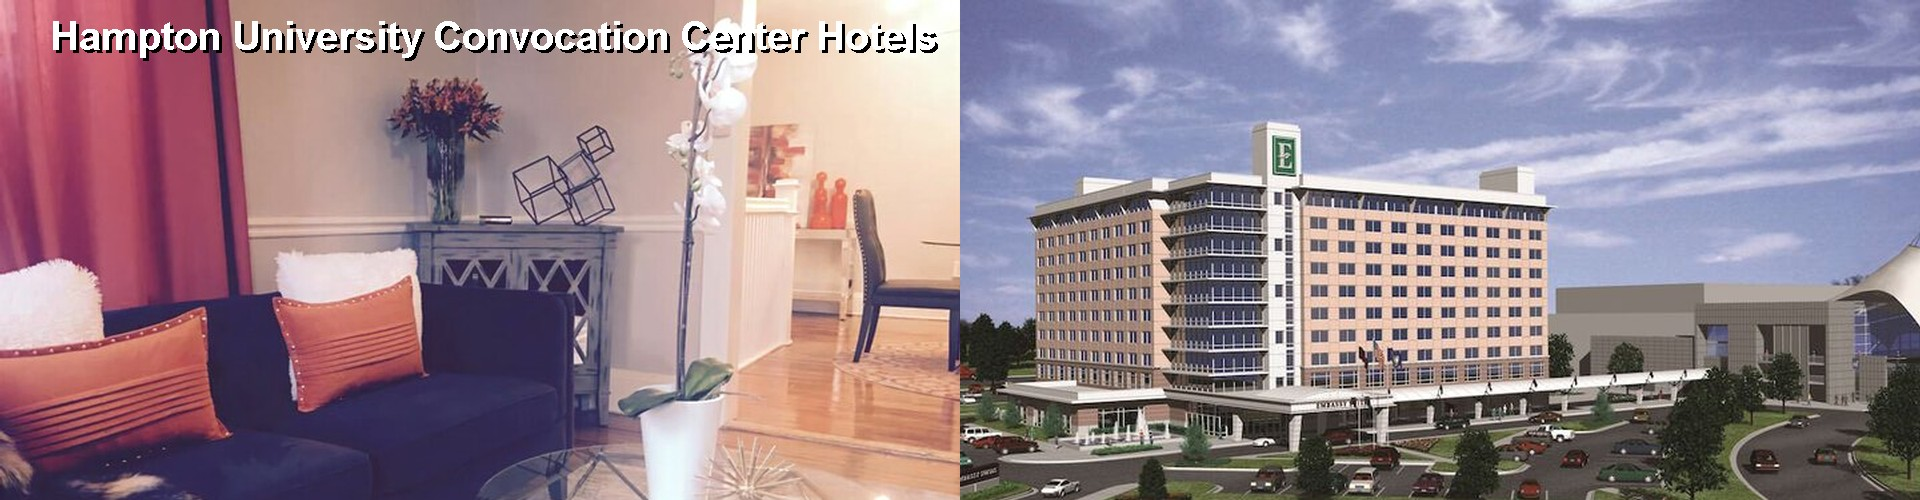 4 Best Hotels near Hampton University Convocation Center